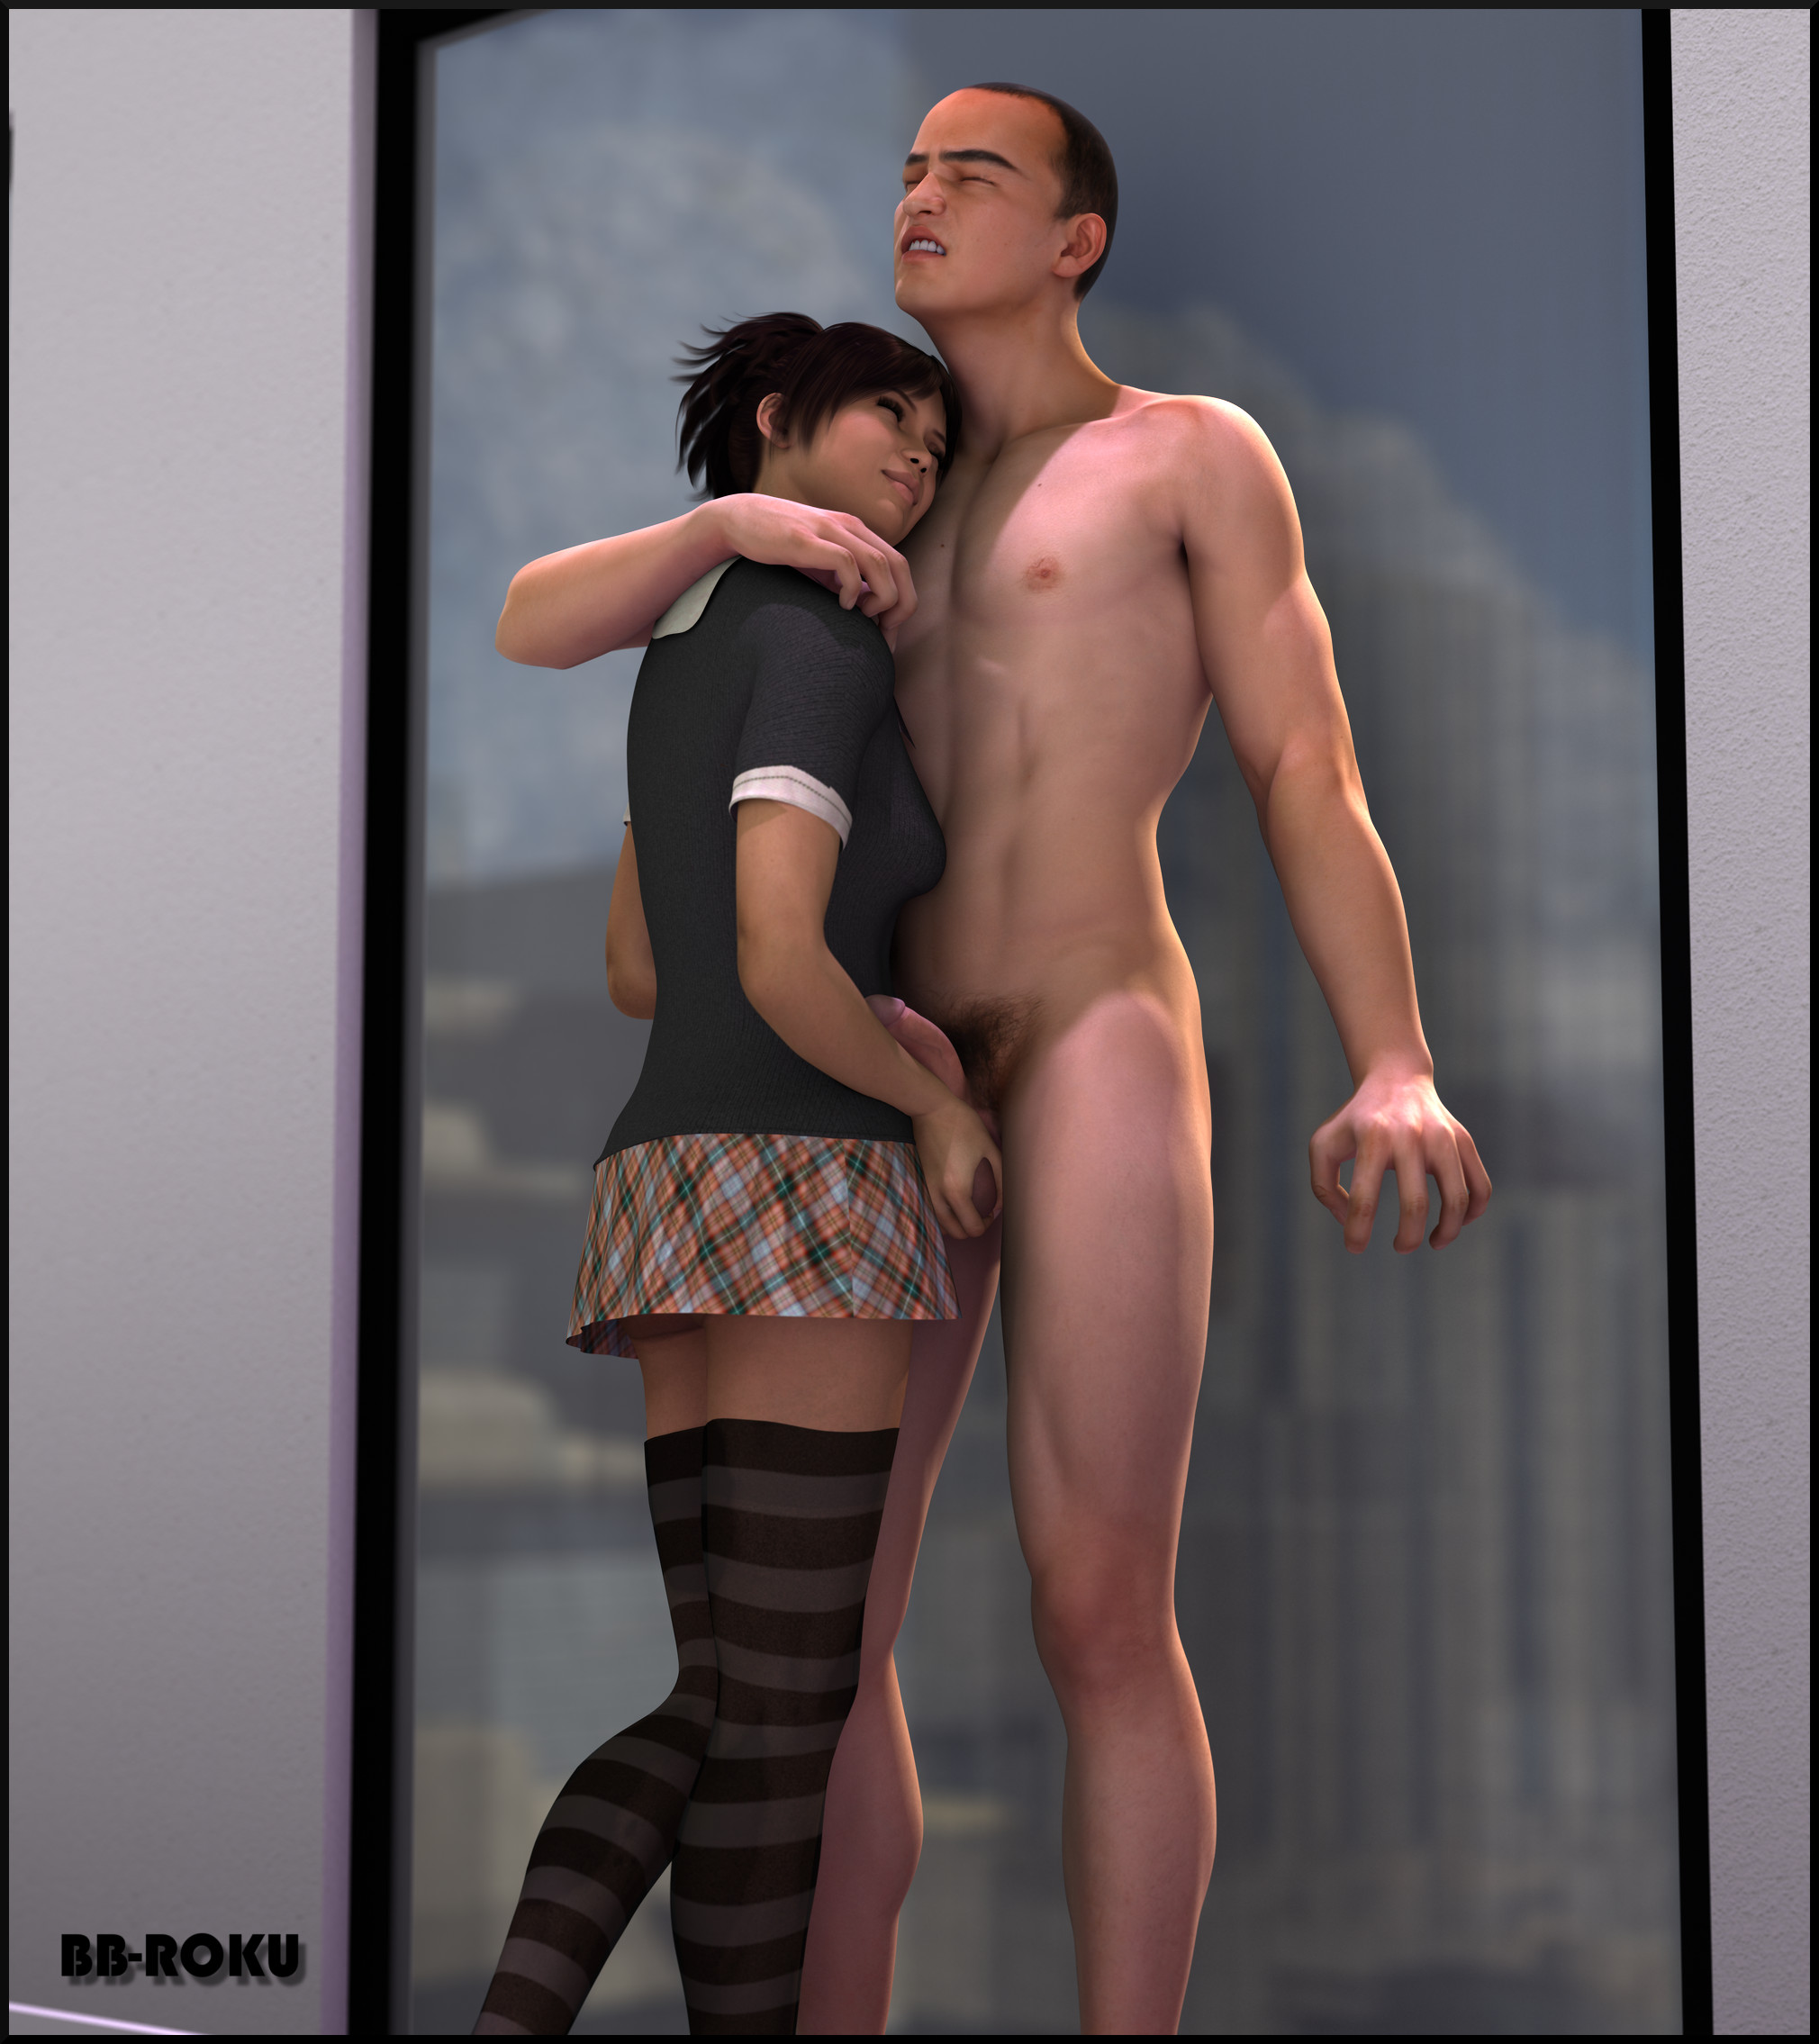 Ballbusting squeezing his balls til he passes out